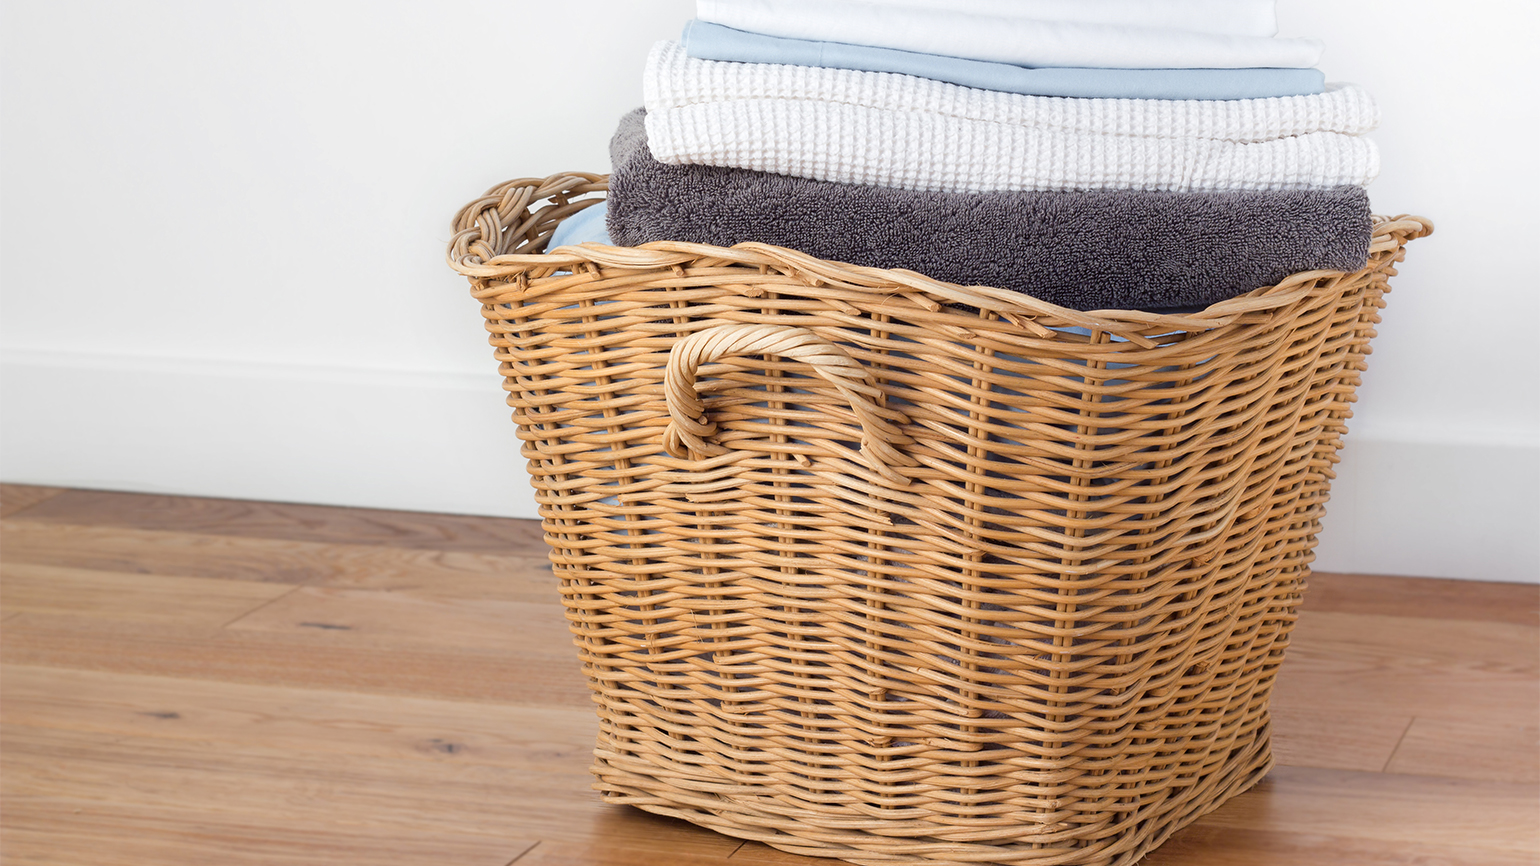 A basket of folded, freshly cleaned laundry